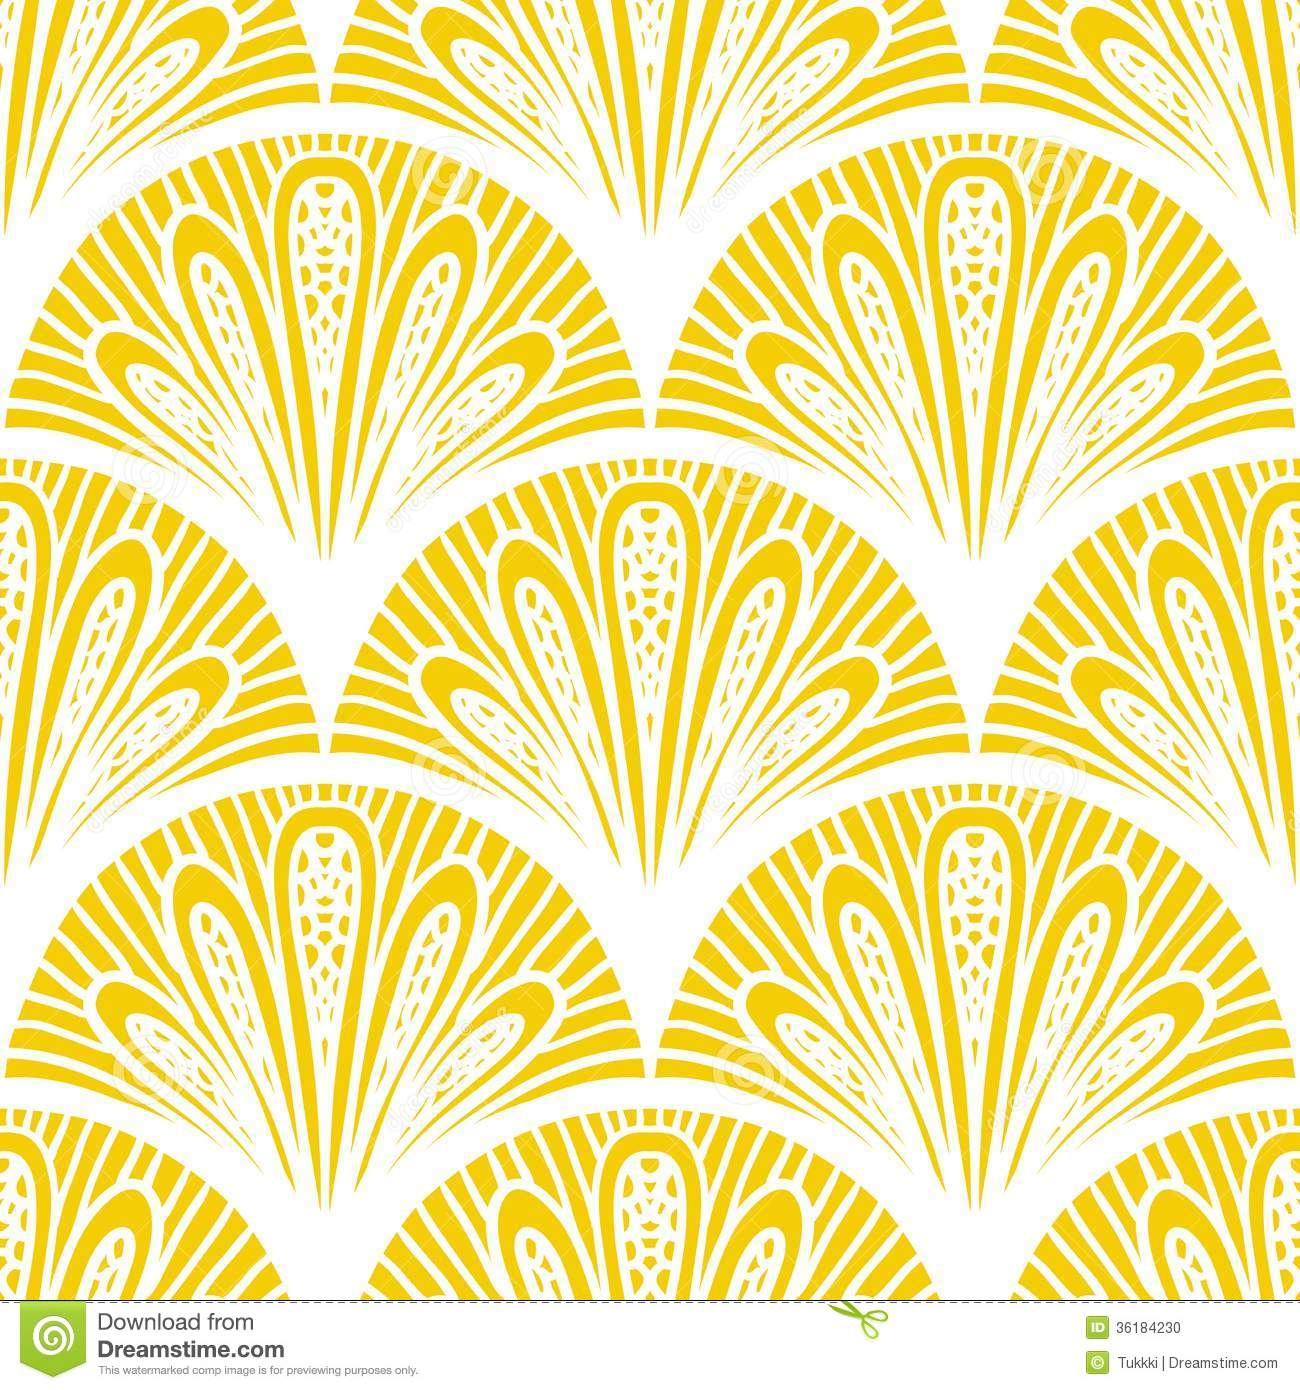 Dorable Wall Art Patterns Sketch - The Wall Art Decorations ...